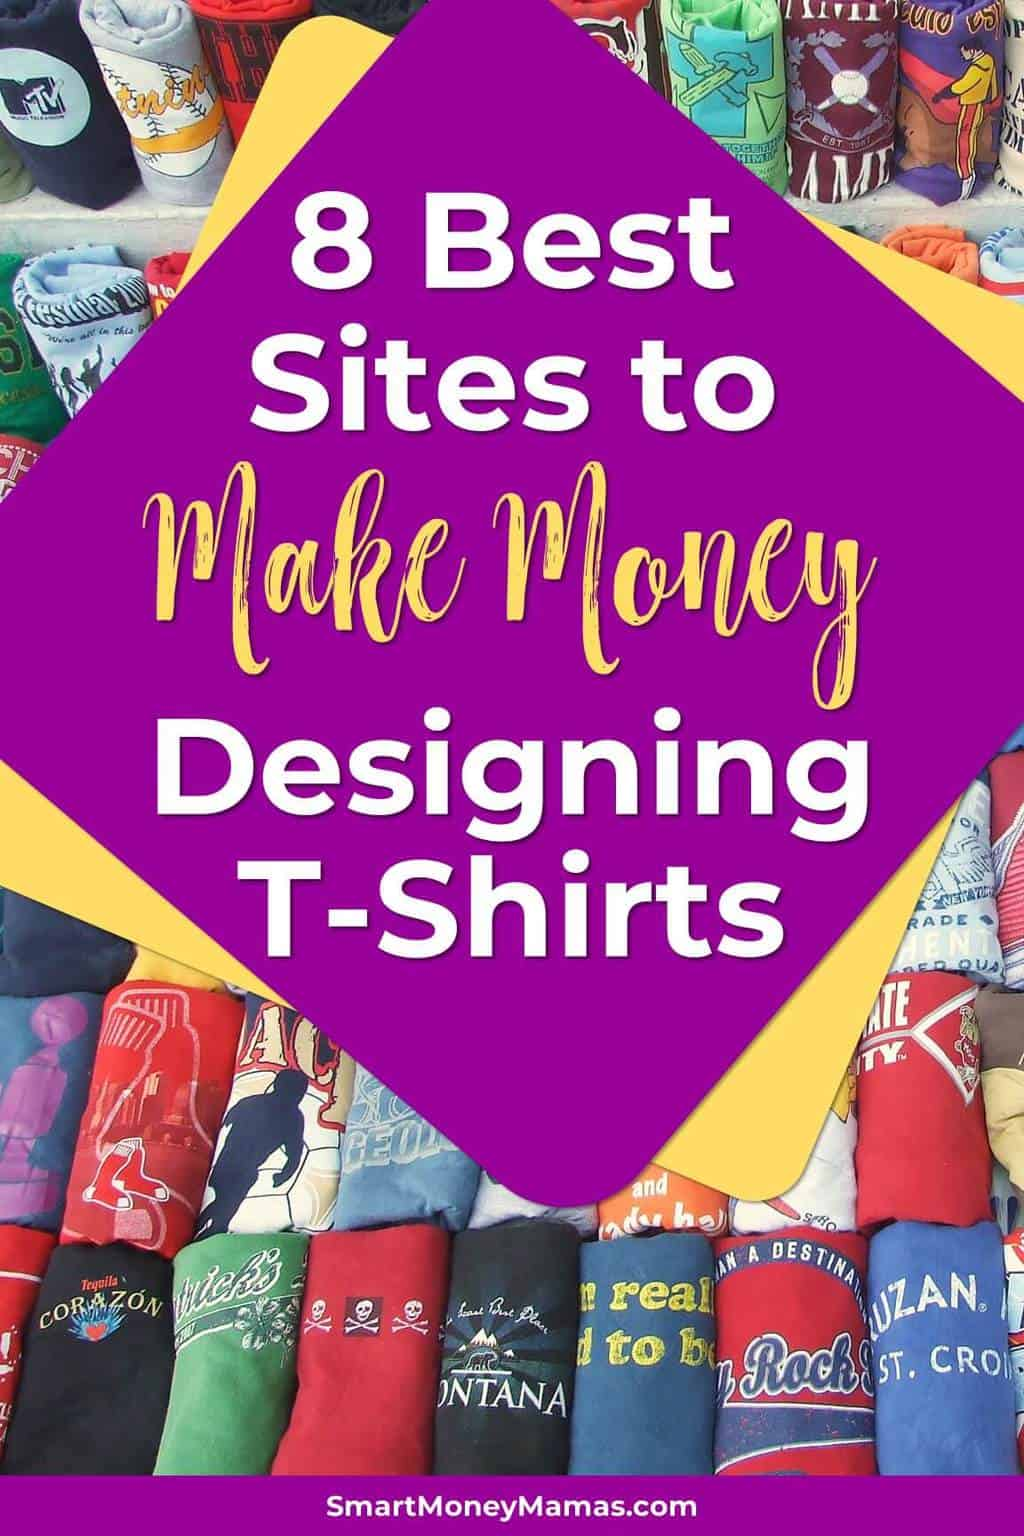 I really love drawing and creating fun text designs - but didn\'t want to deal with inventory or take big financial risks. Print-on-demand sounds like a great way to get started for free! Going to design some shirts today <3 #makemoneyonline #printondemand #designer #makemoney #onlineentrepreneur #mompreneur #sidehustle  #smartmoneymamas